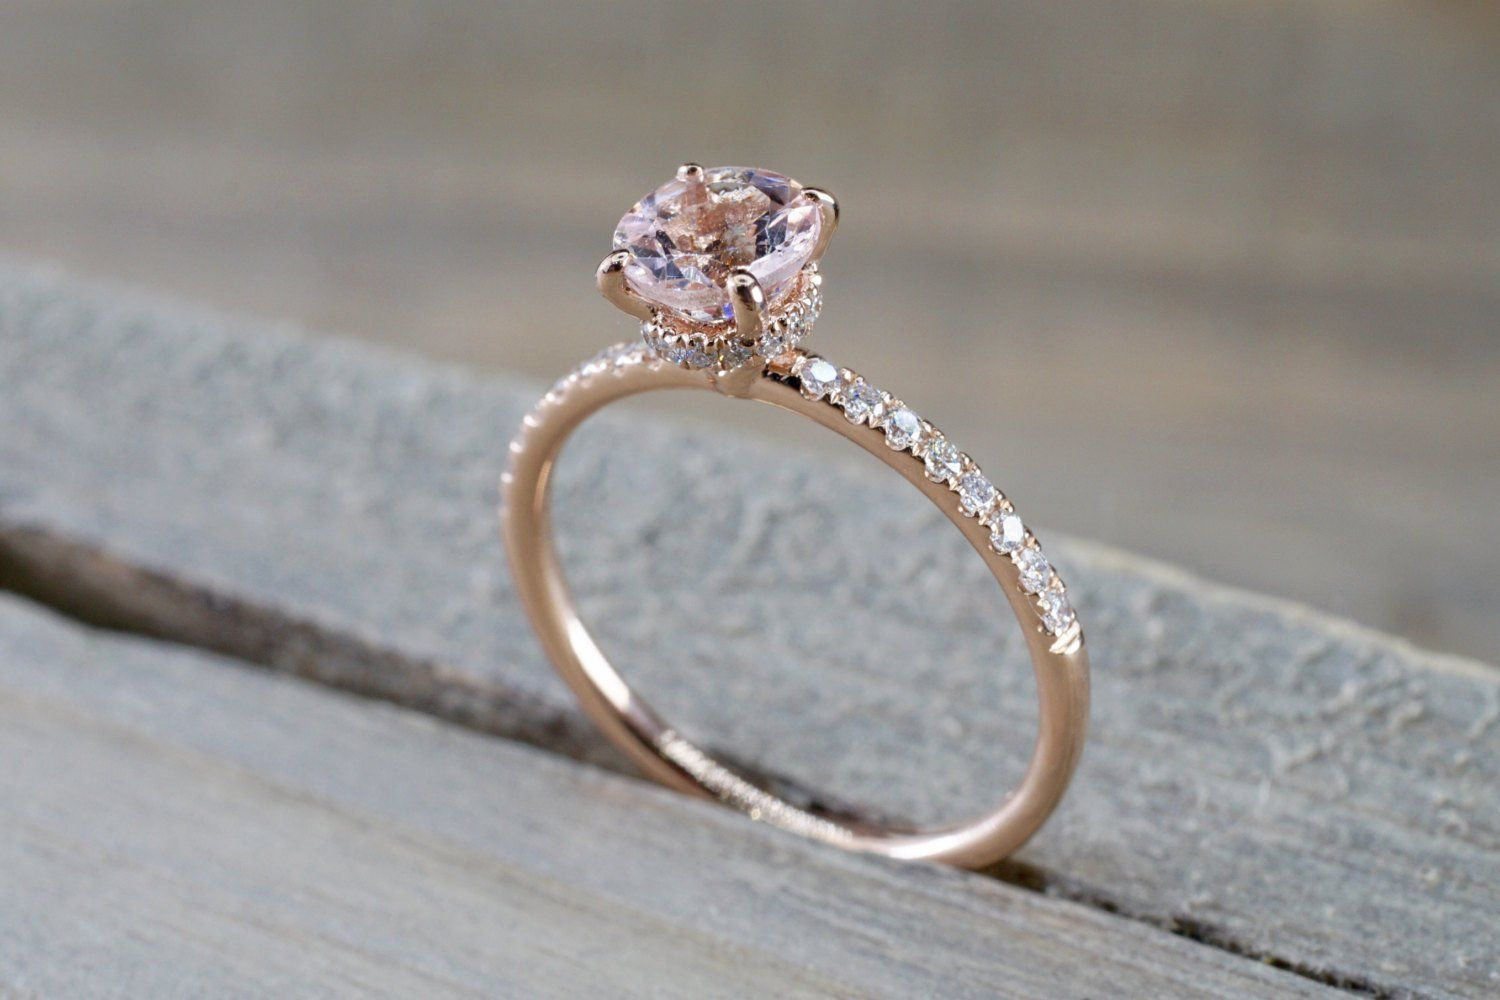 14k Rose Gold Dainty Round Morganite With Round Cut Diamonds Ring ER010002 #usquotes